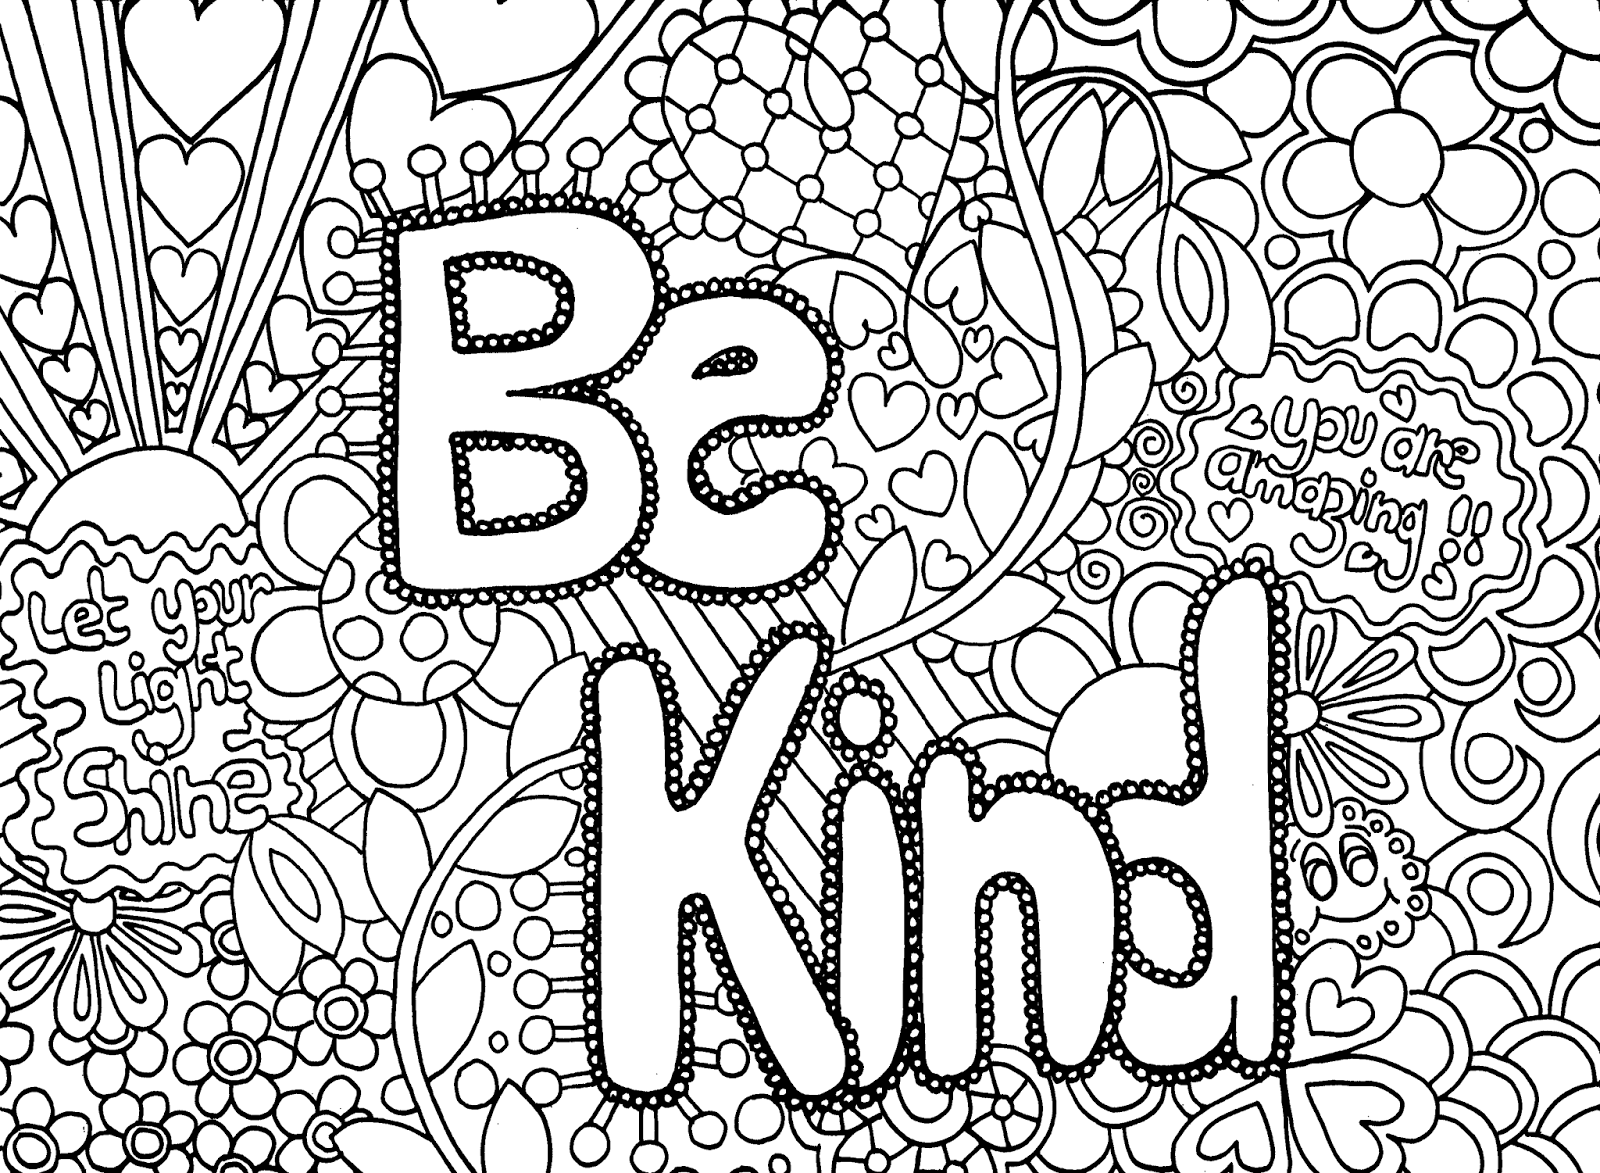 coloring pages hard very difficult coloring pages for adults at getdrawings coloring pages hard